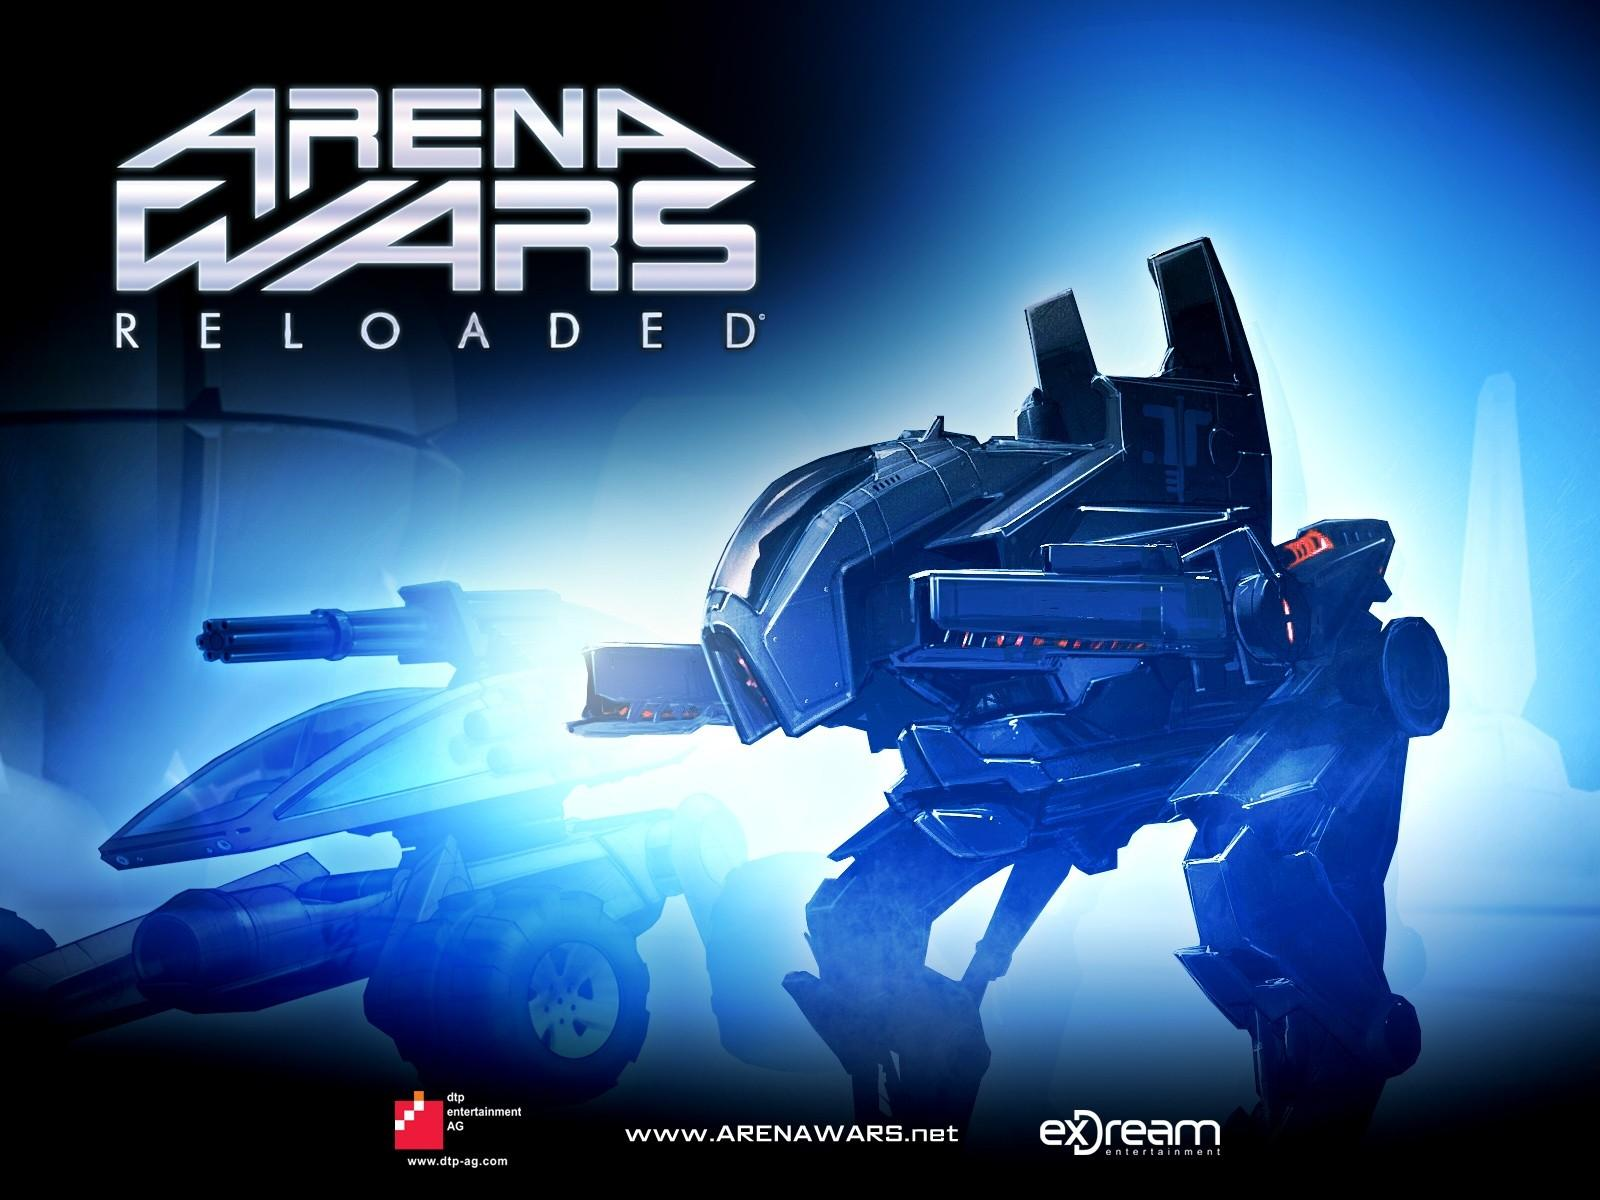 ���� Arena Wars Reloaded 1600x1200